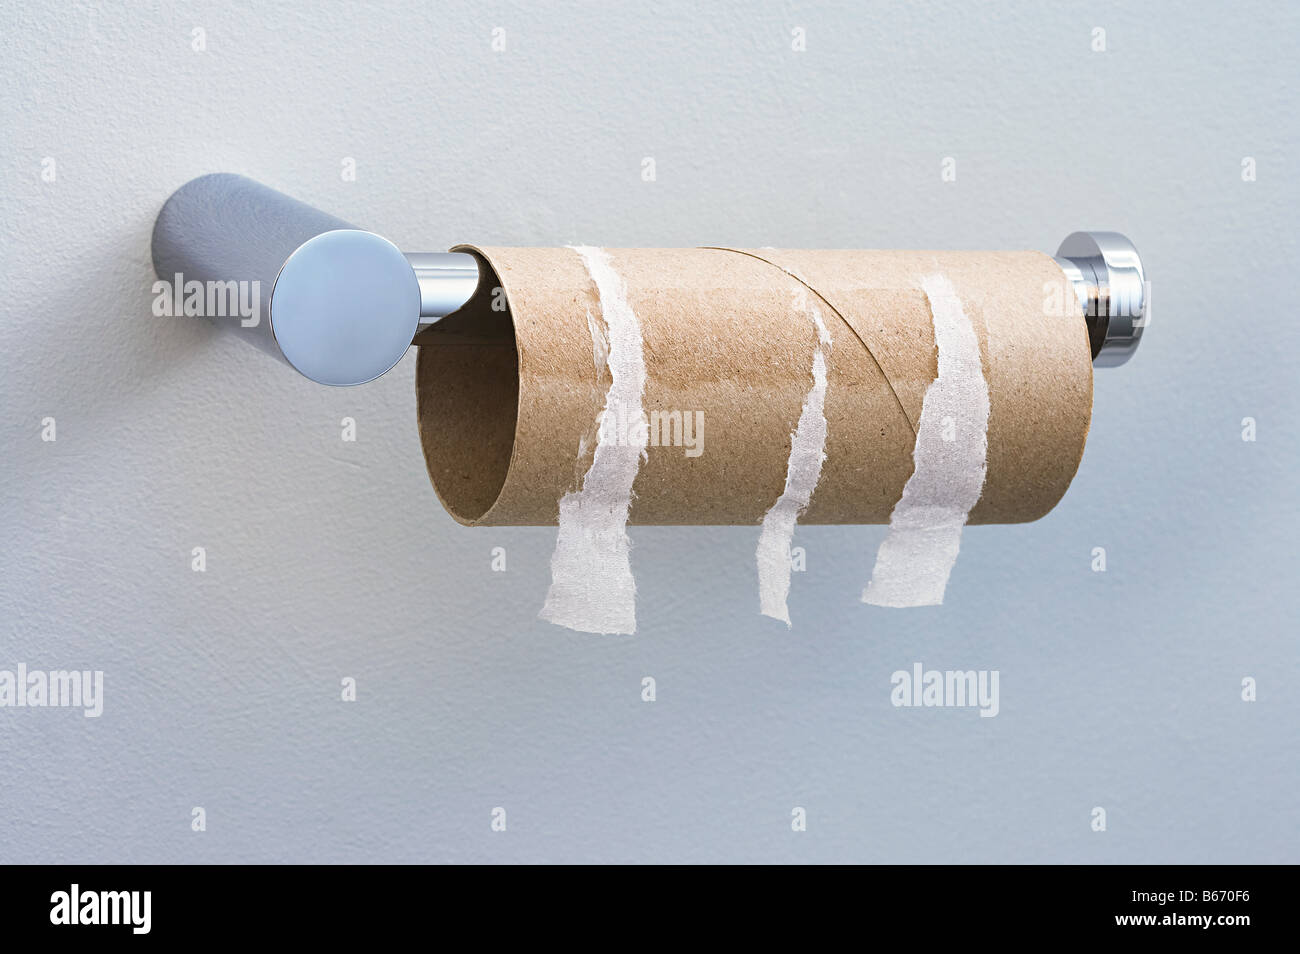 Finished toilet roll - Stock Image